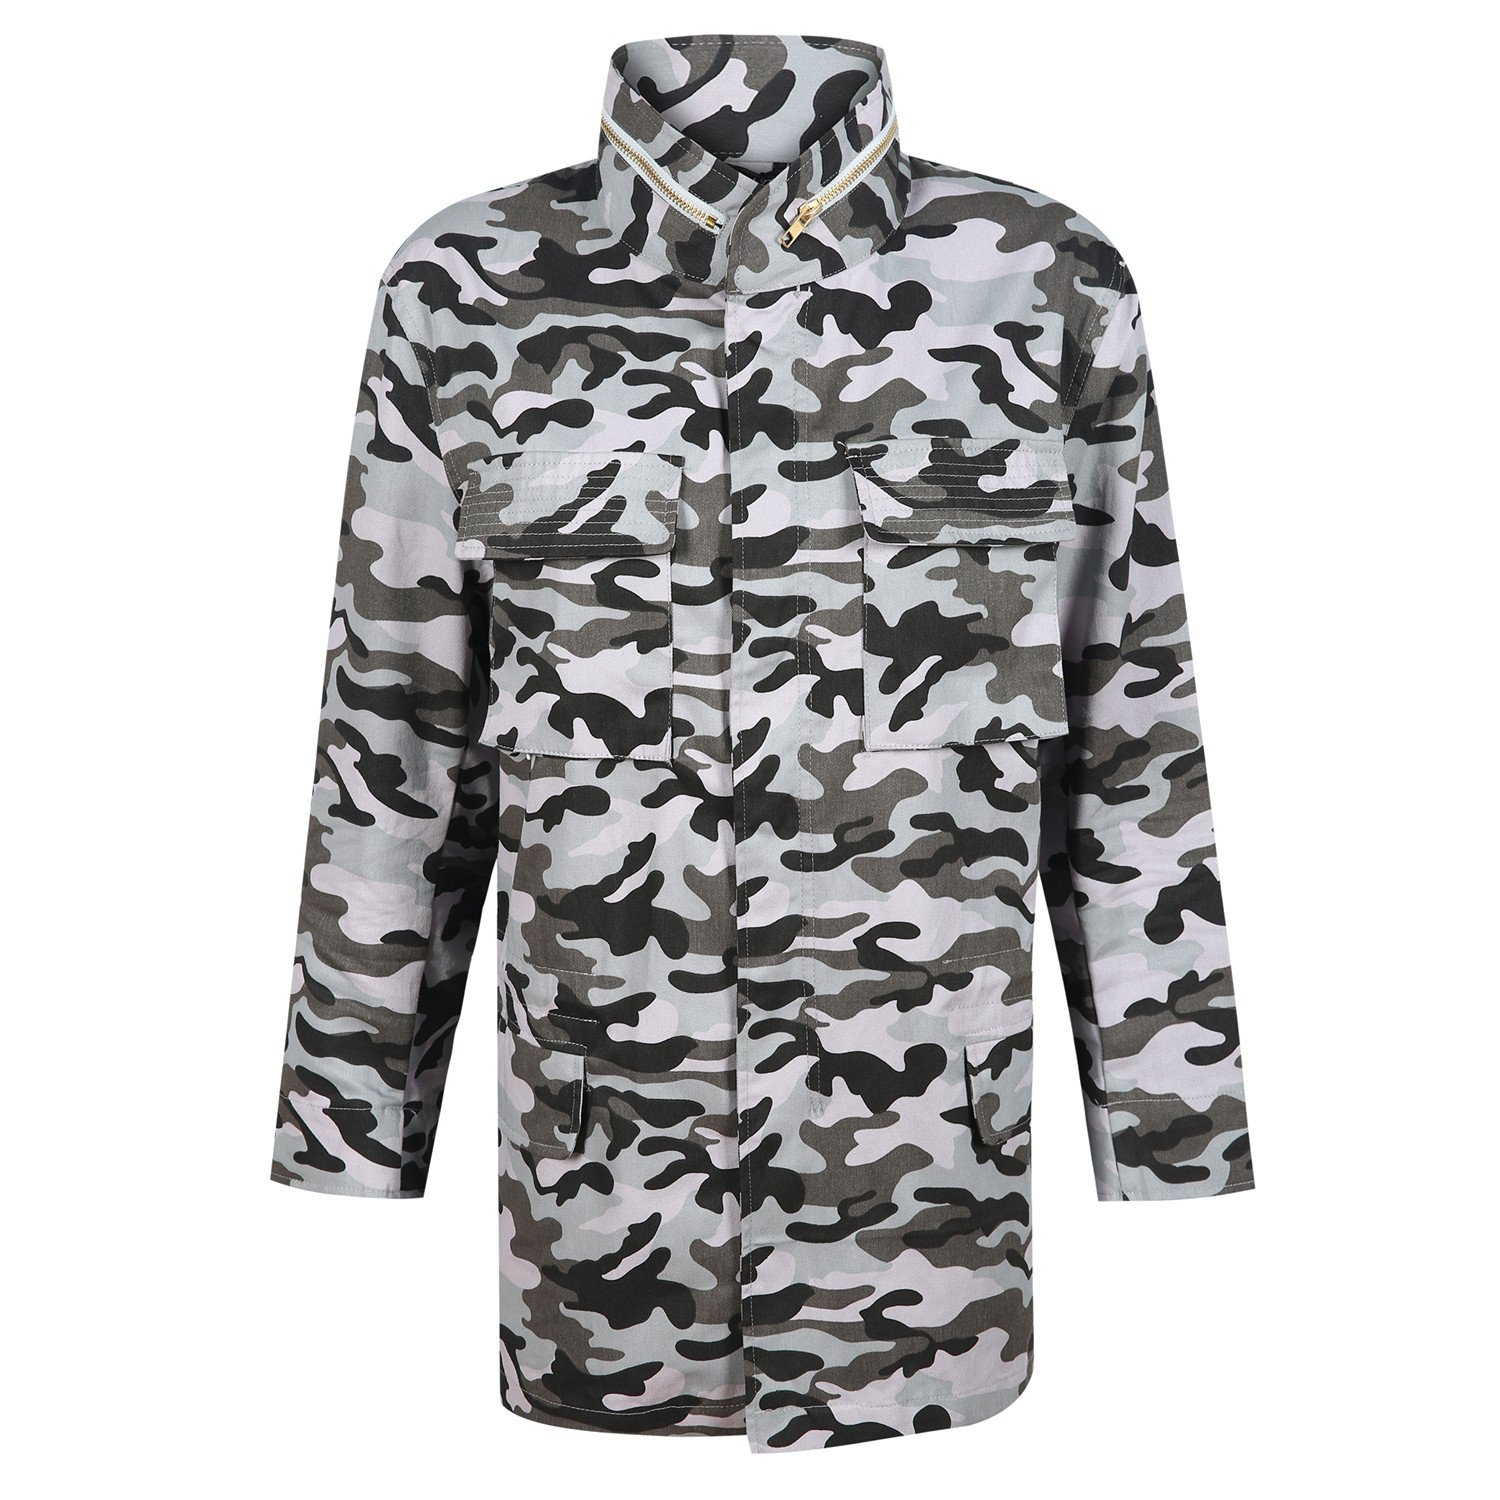 74c300156d Top 10 wholesale Camo Top Outfit - Chinabrands.com